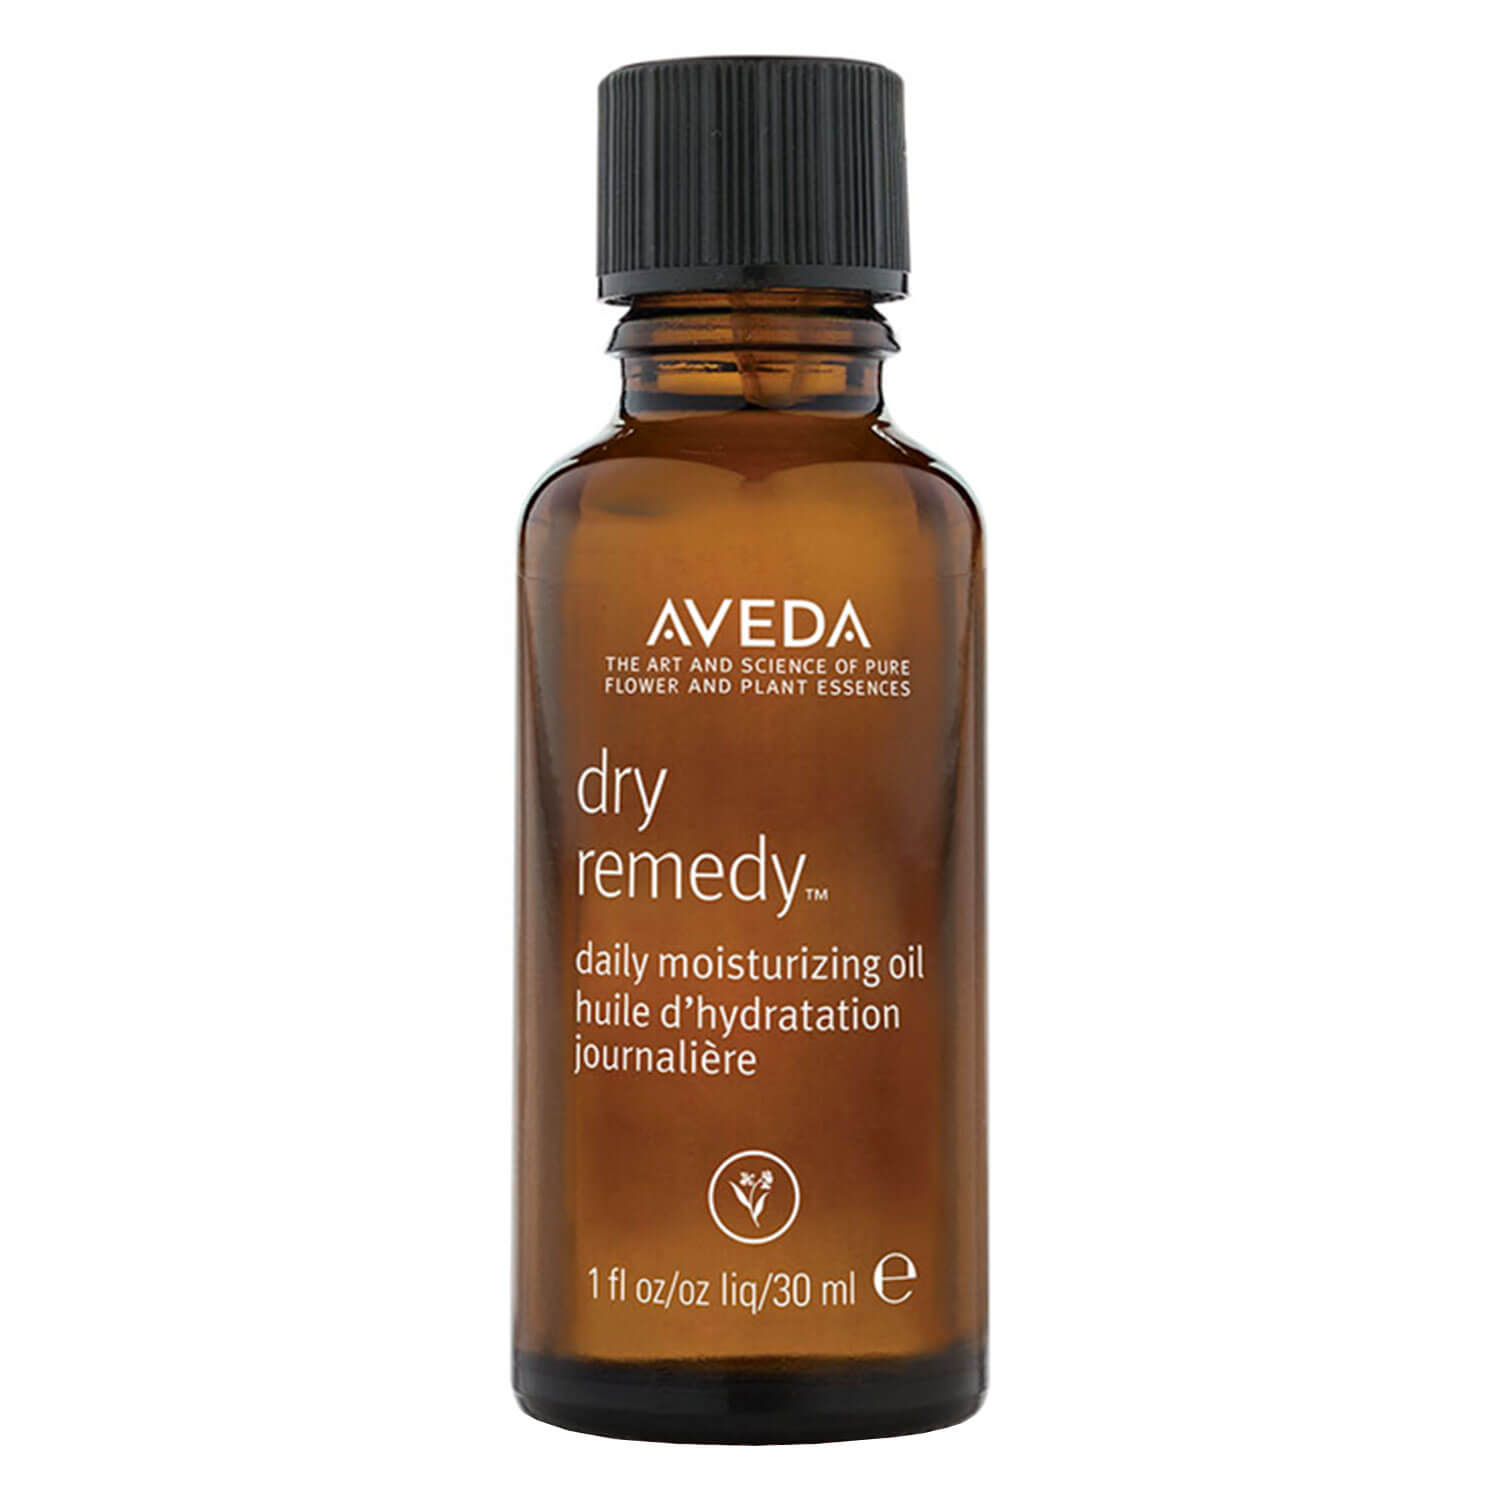 dry remedy - daily moisturizing oil - 30ml